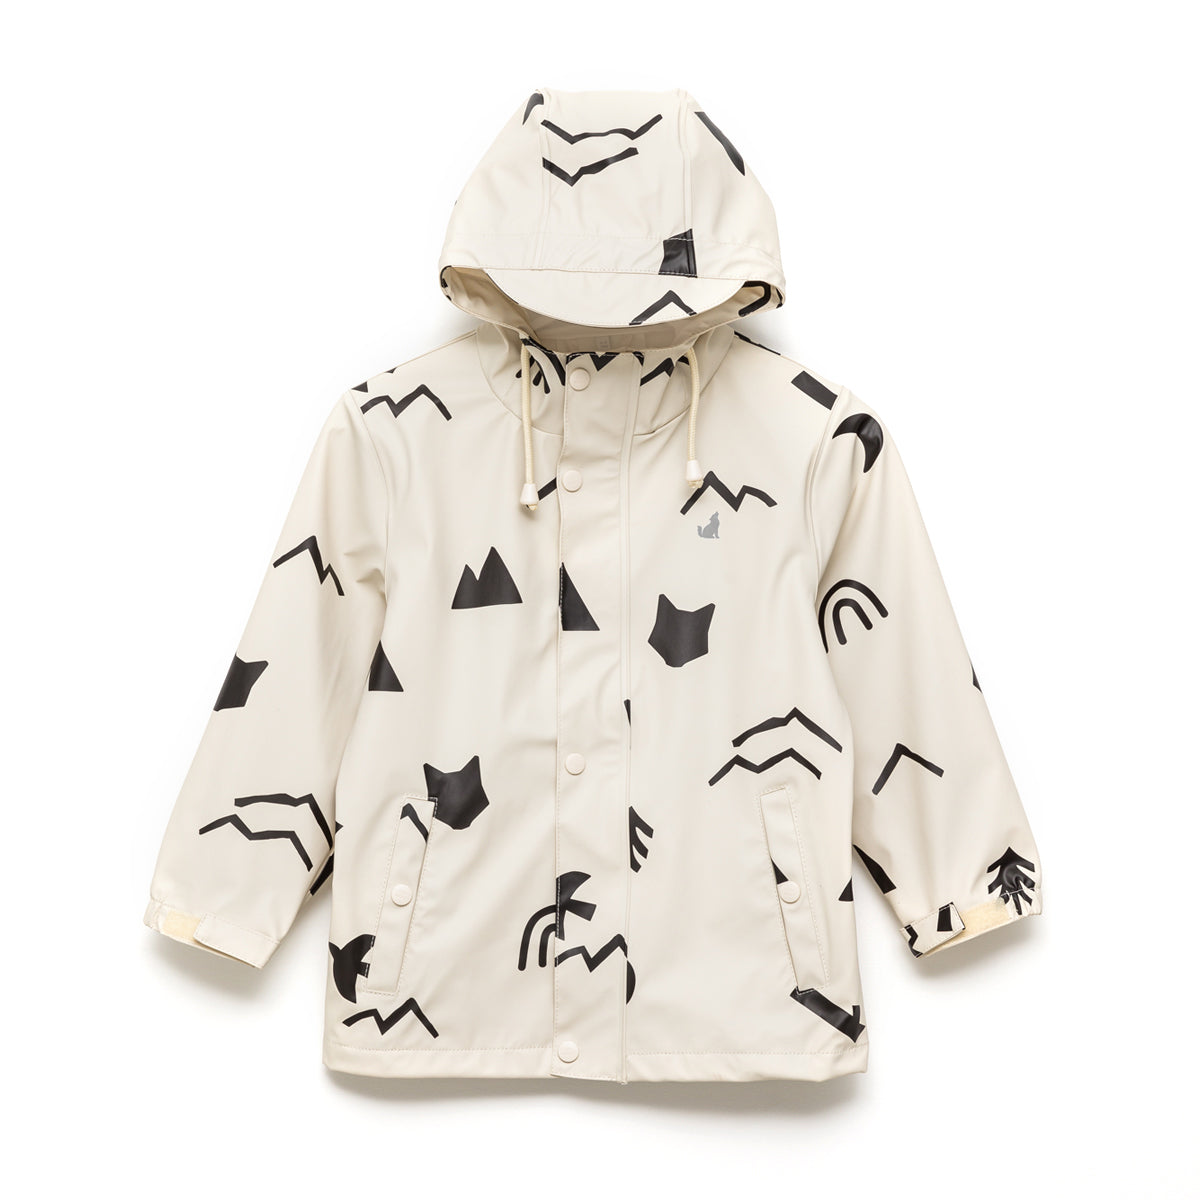 Kids Play Rain Jacket Happy Camper